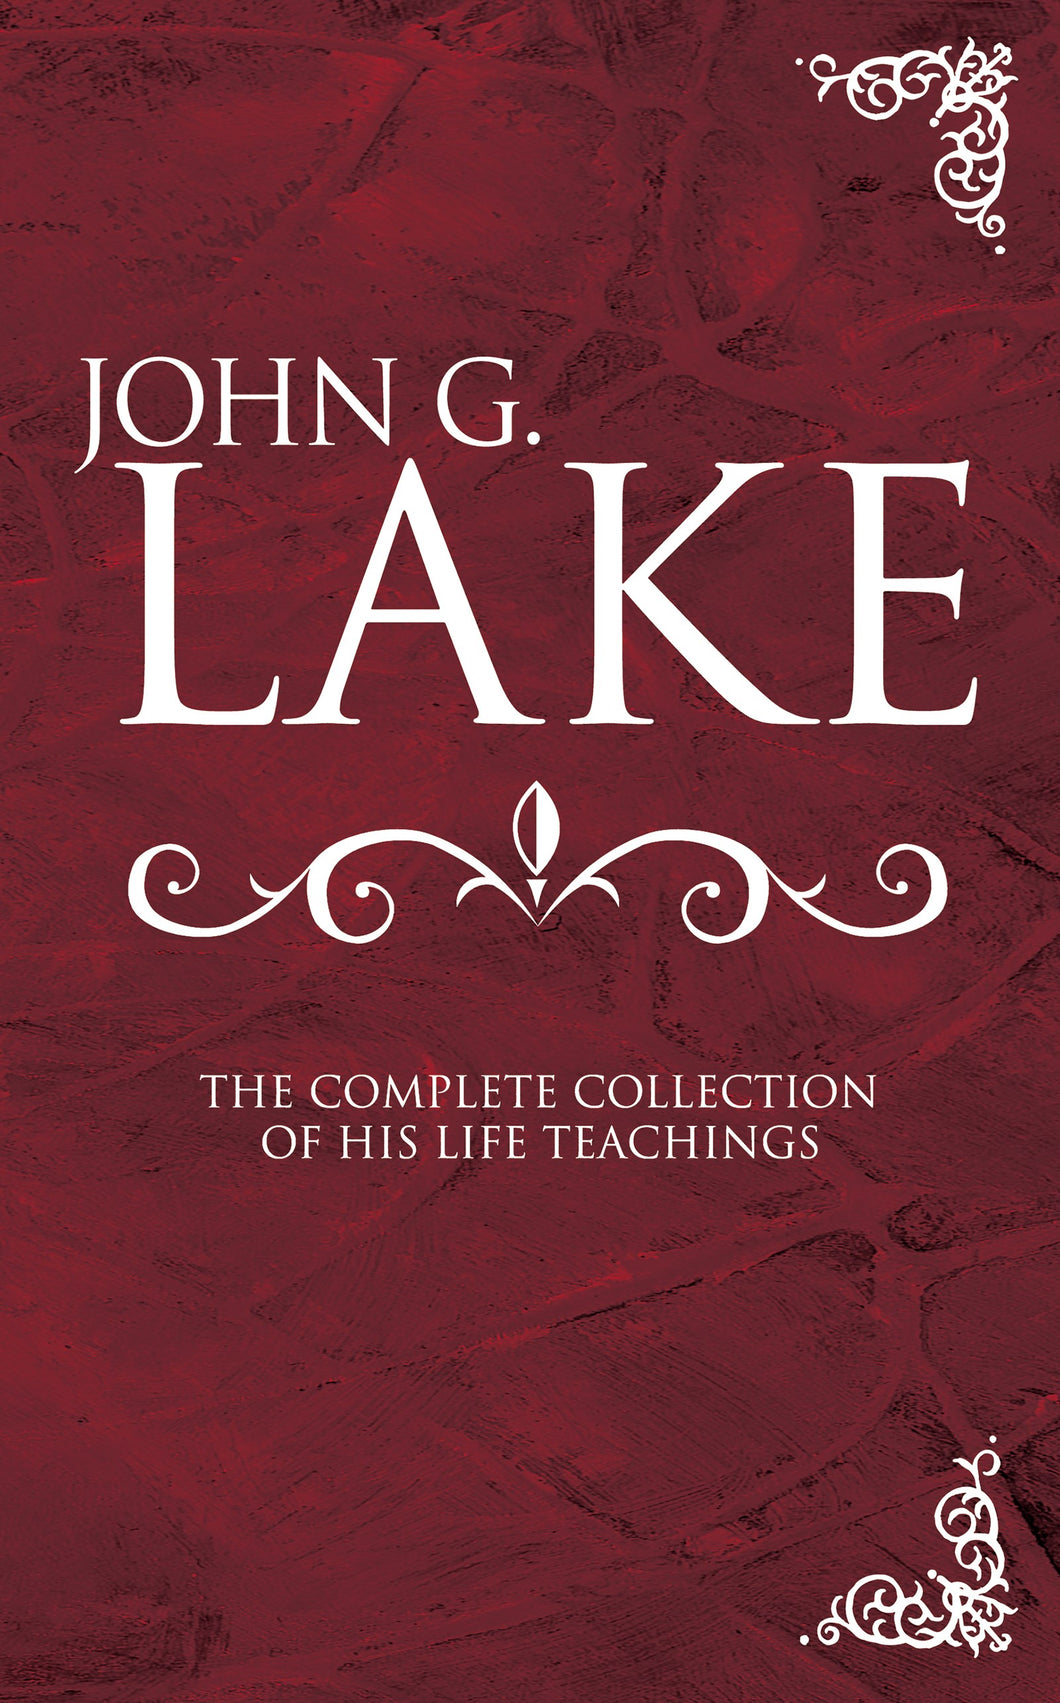 John G Lake: Complete Collection Of His Teachings